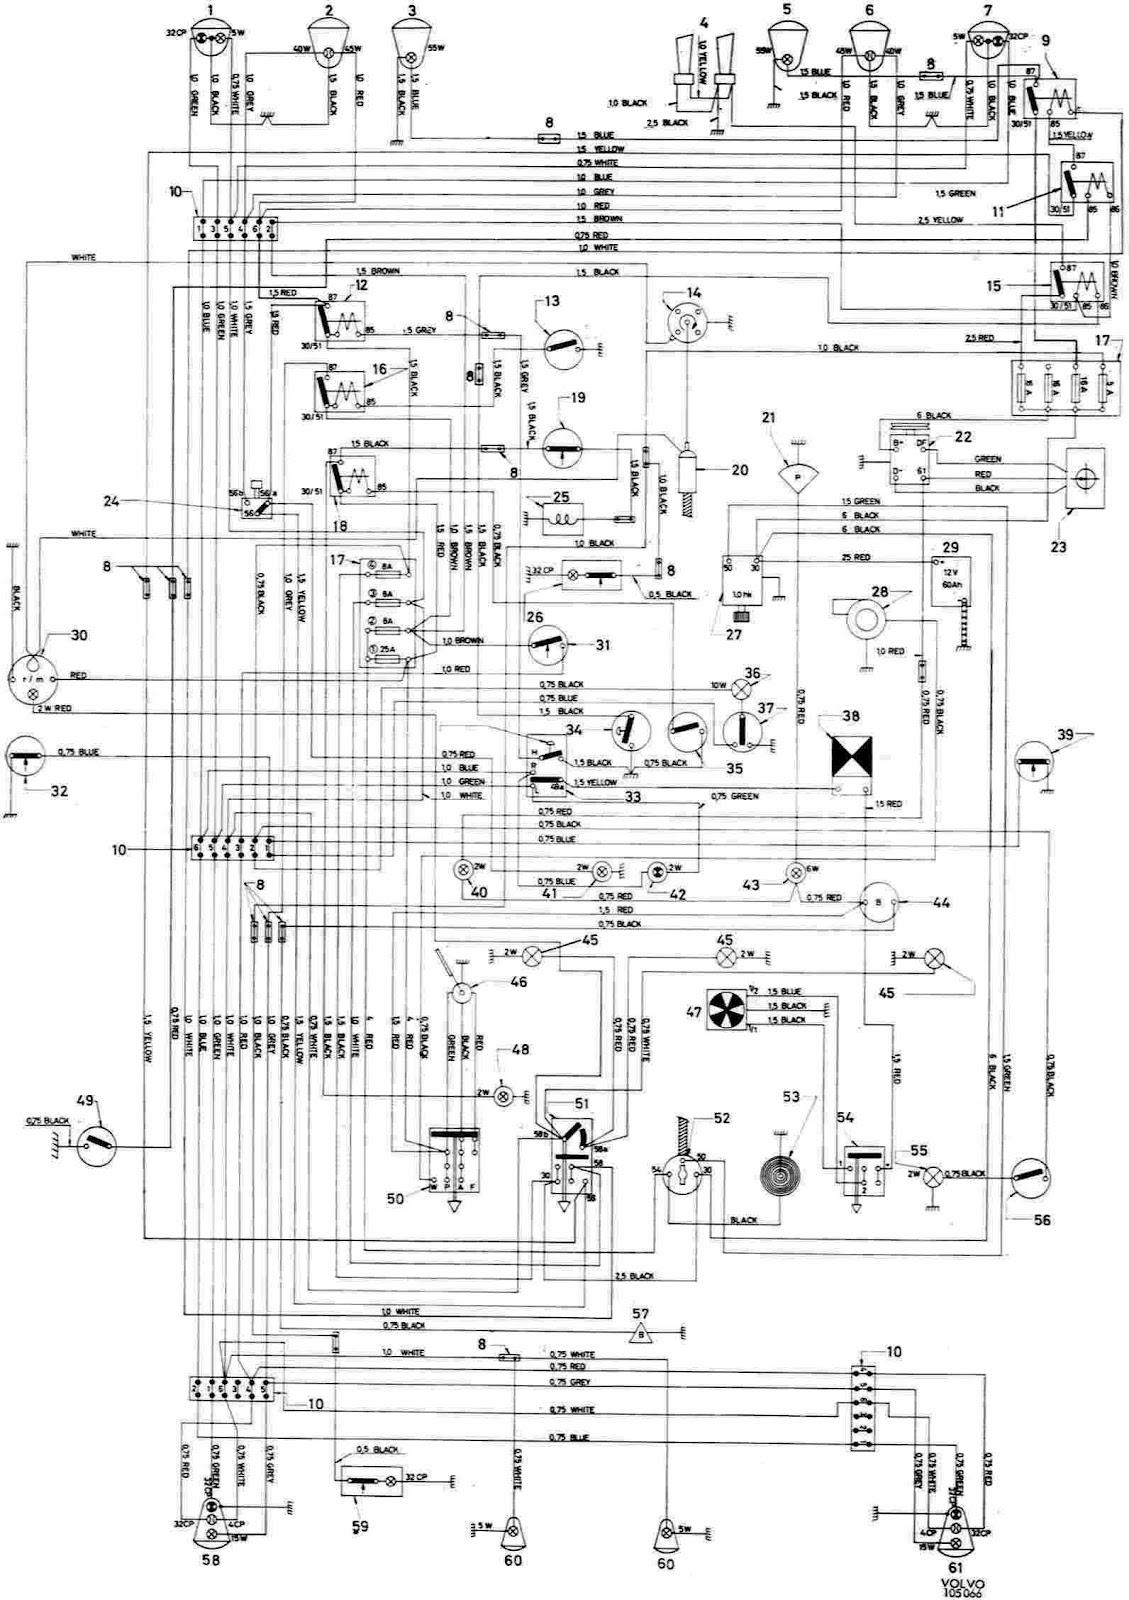 medium resolution of  volvo 123 gt complete wiring diagram hu 613 wiring diagram smart